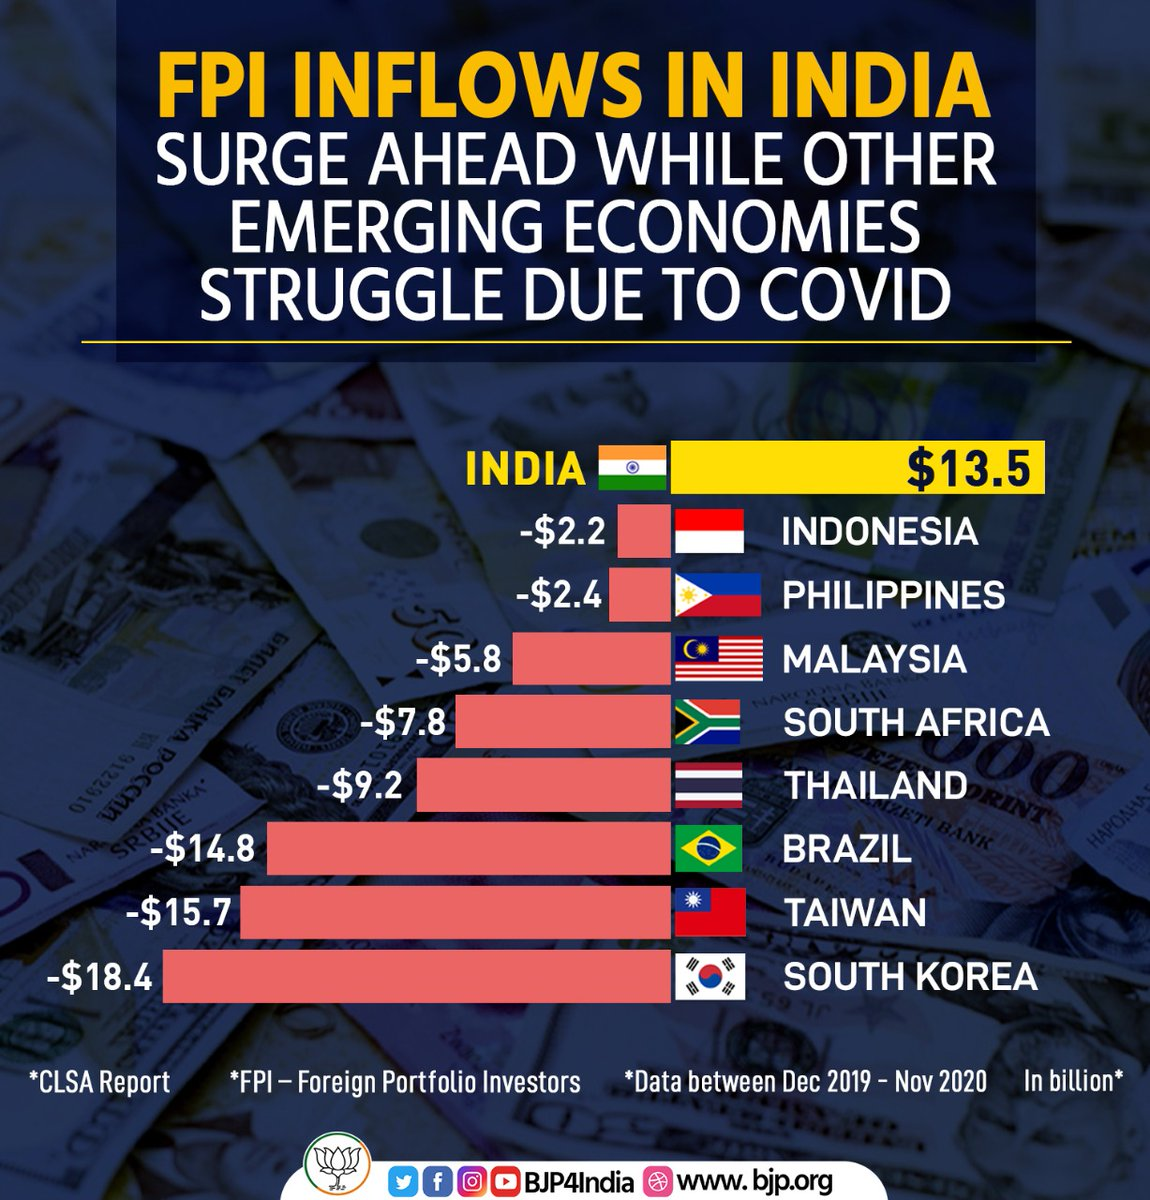 FPI inflows in India surge ahead while other emerging economies have struggled due to COVID-19 pandemic.  #EconomyRebounds